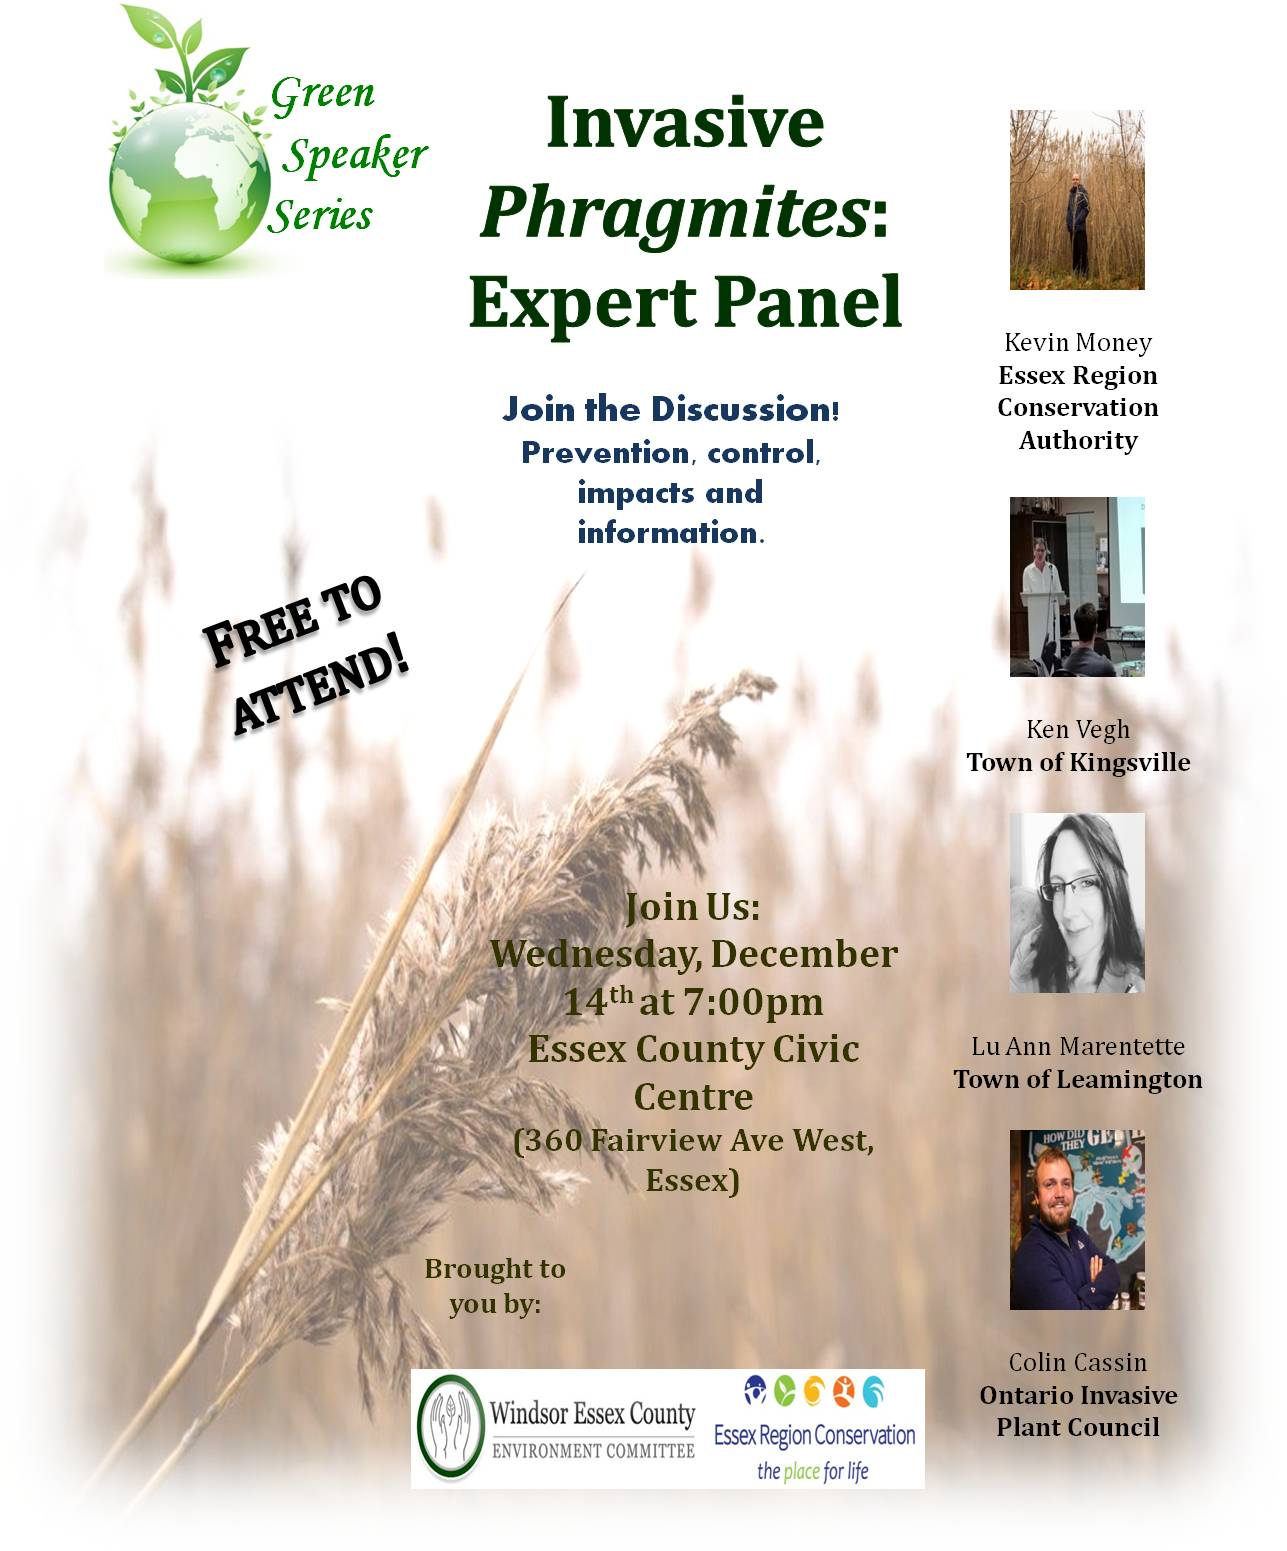 Invasive Phragmites: Expert Panel